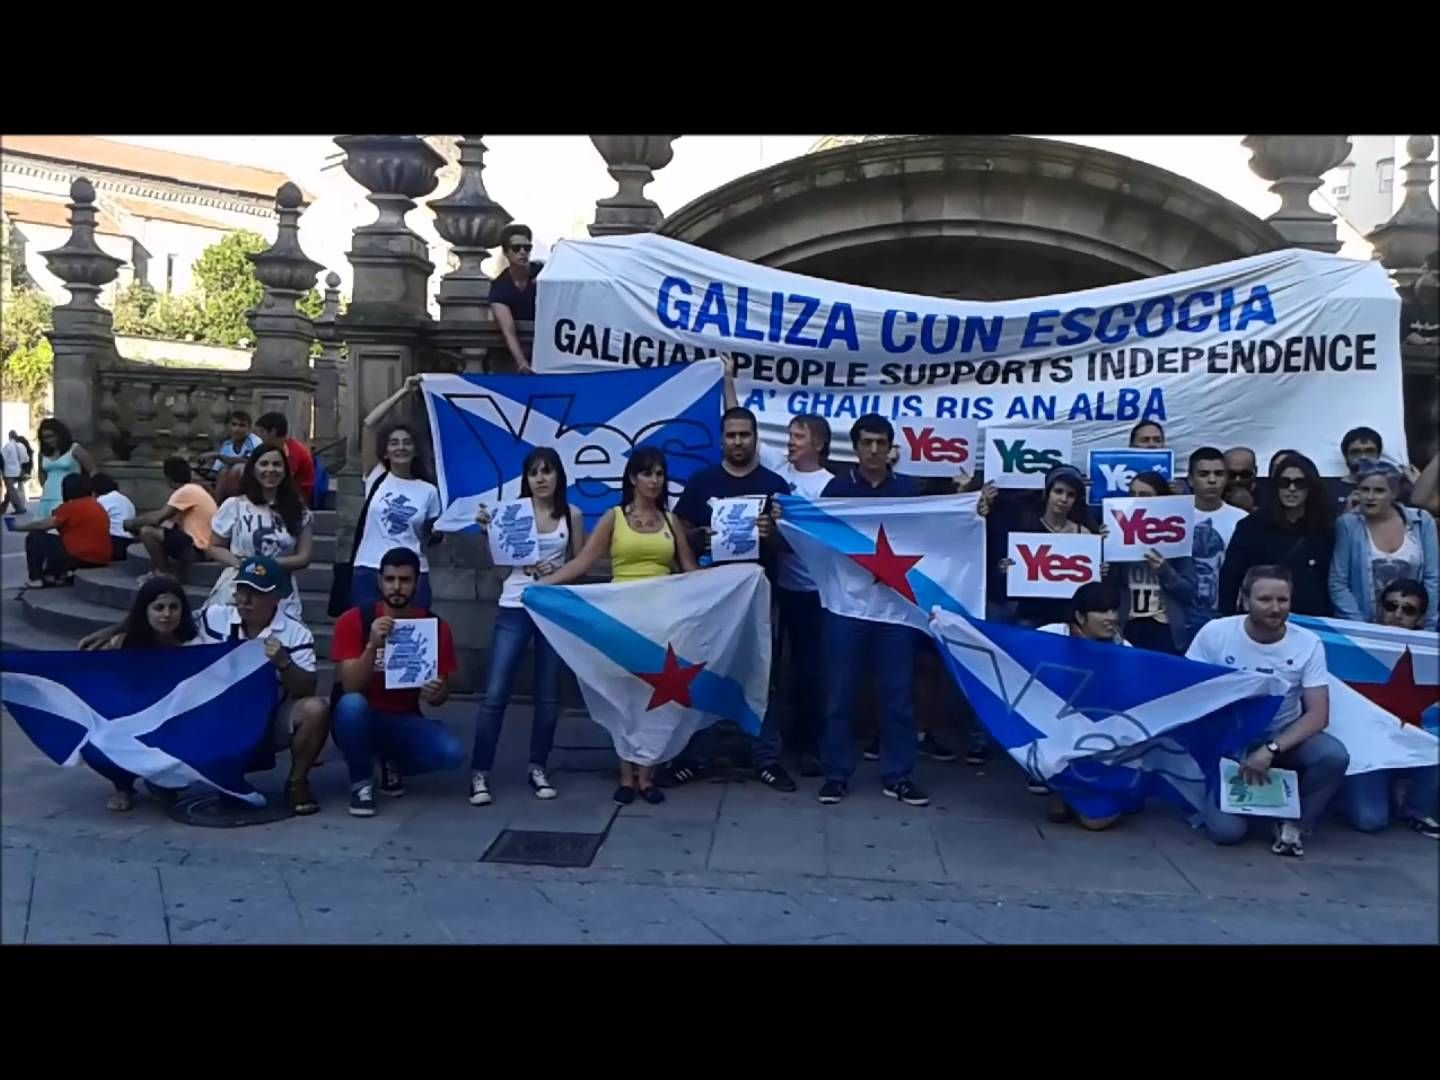 Solidarity with Scotland from Pontevedra